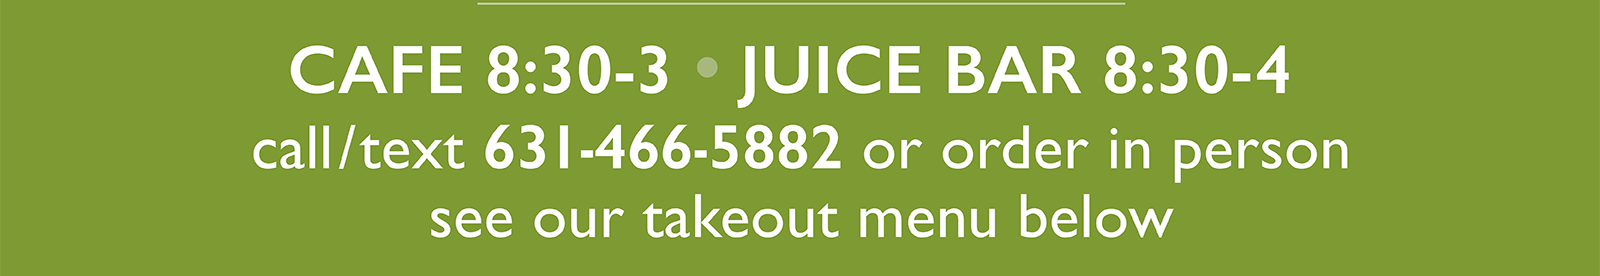 CAFE 8:30-3 • JUICE BAR 8:30-4 - call/text 631-466-5882 or order in person - see our takeout menu below